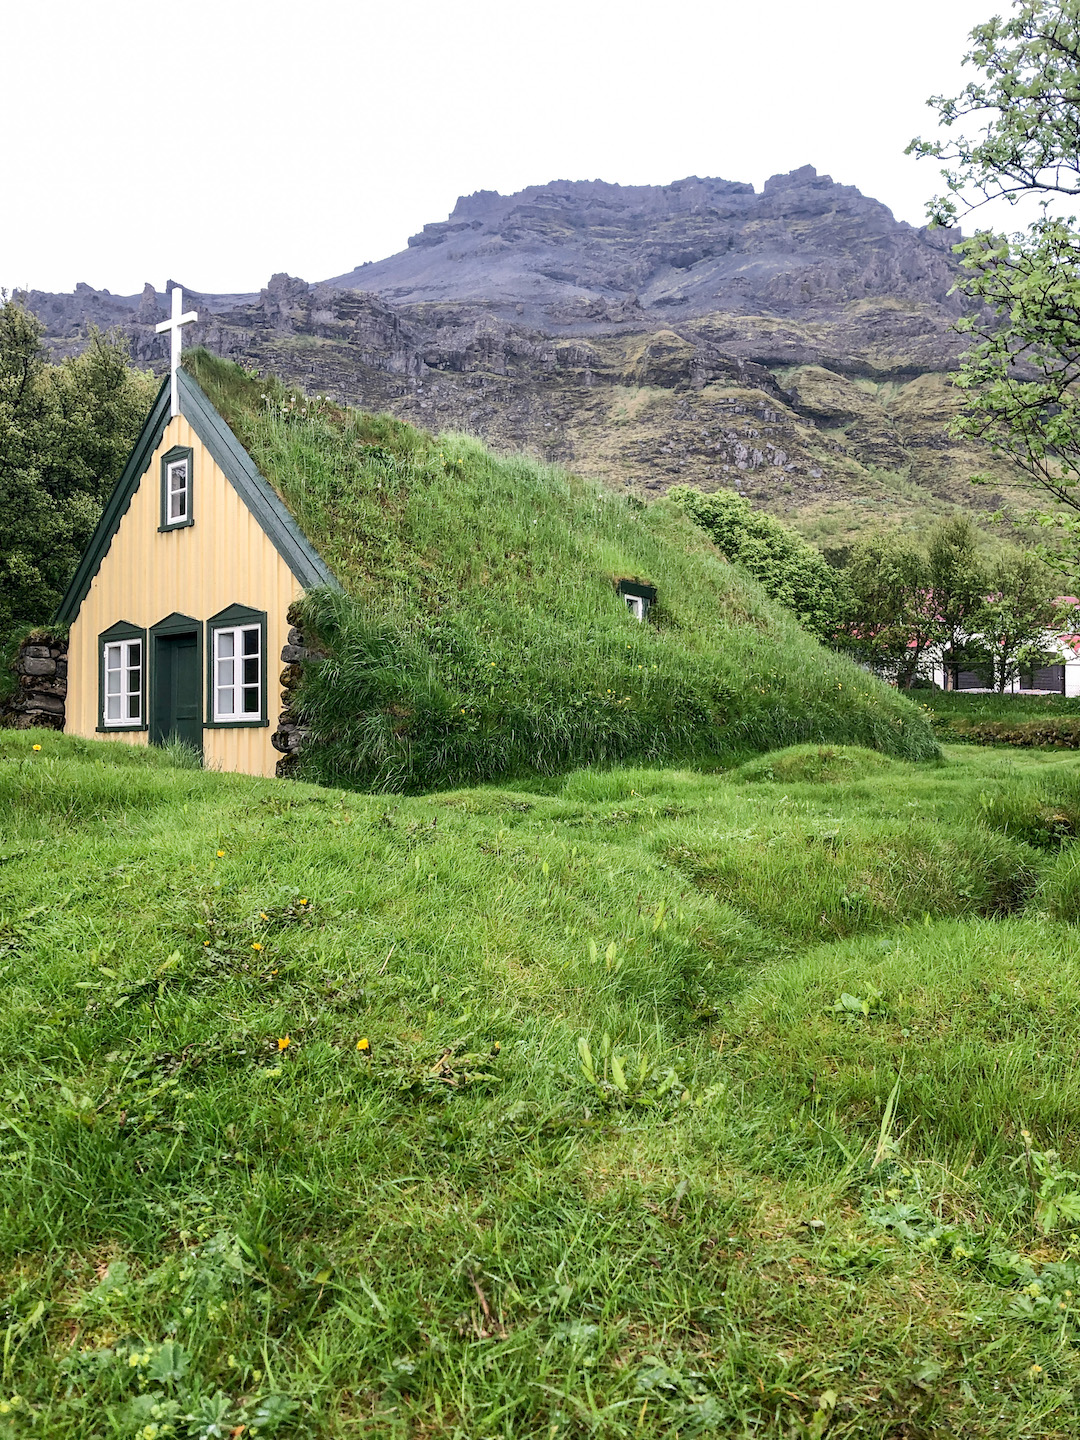 A Thatched Church in Iceland